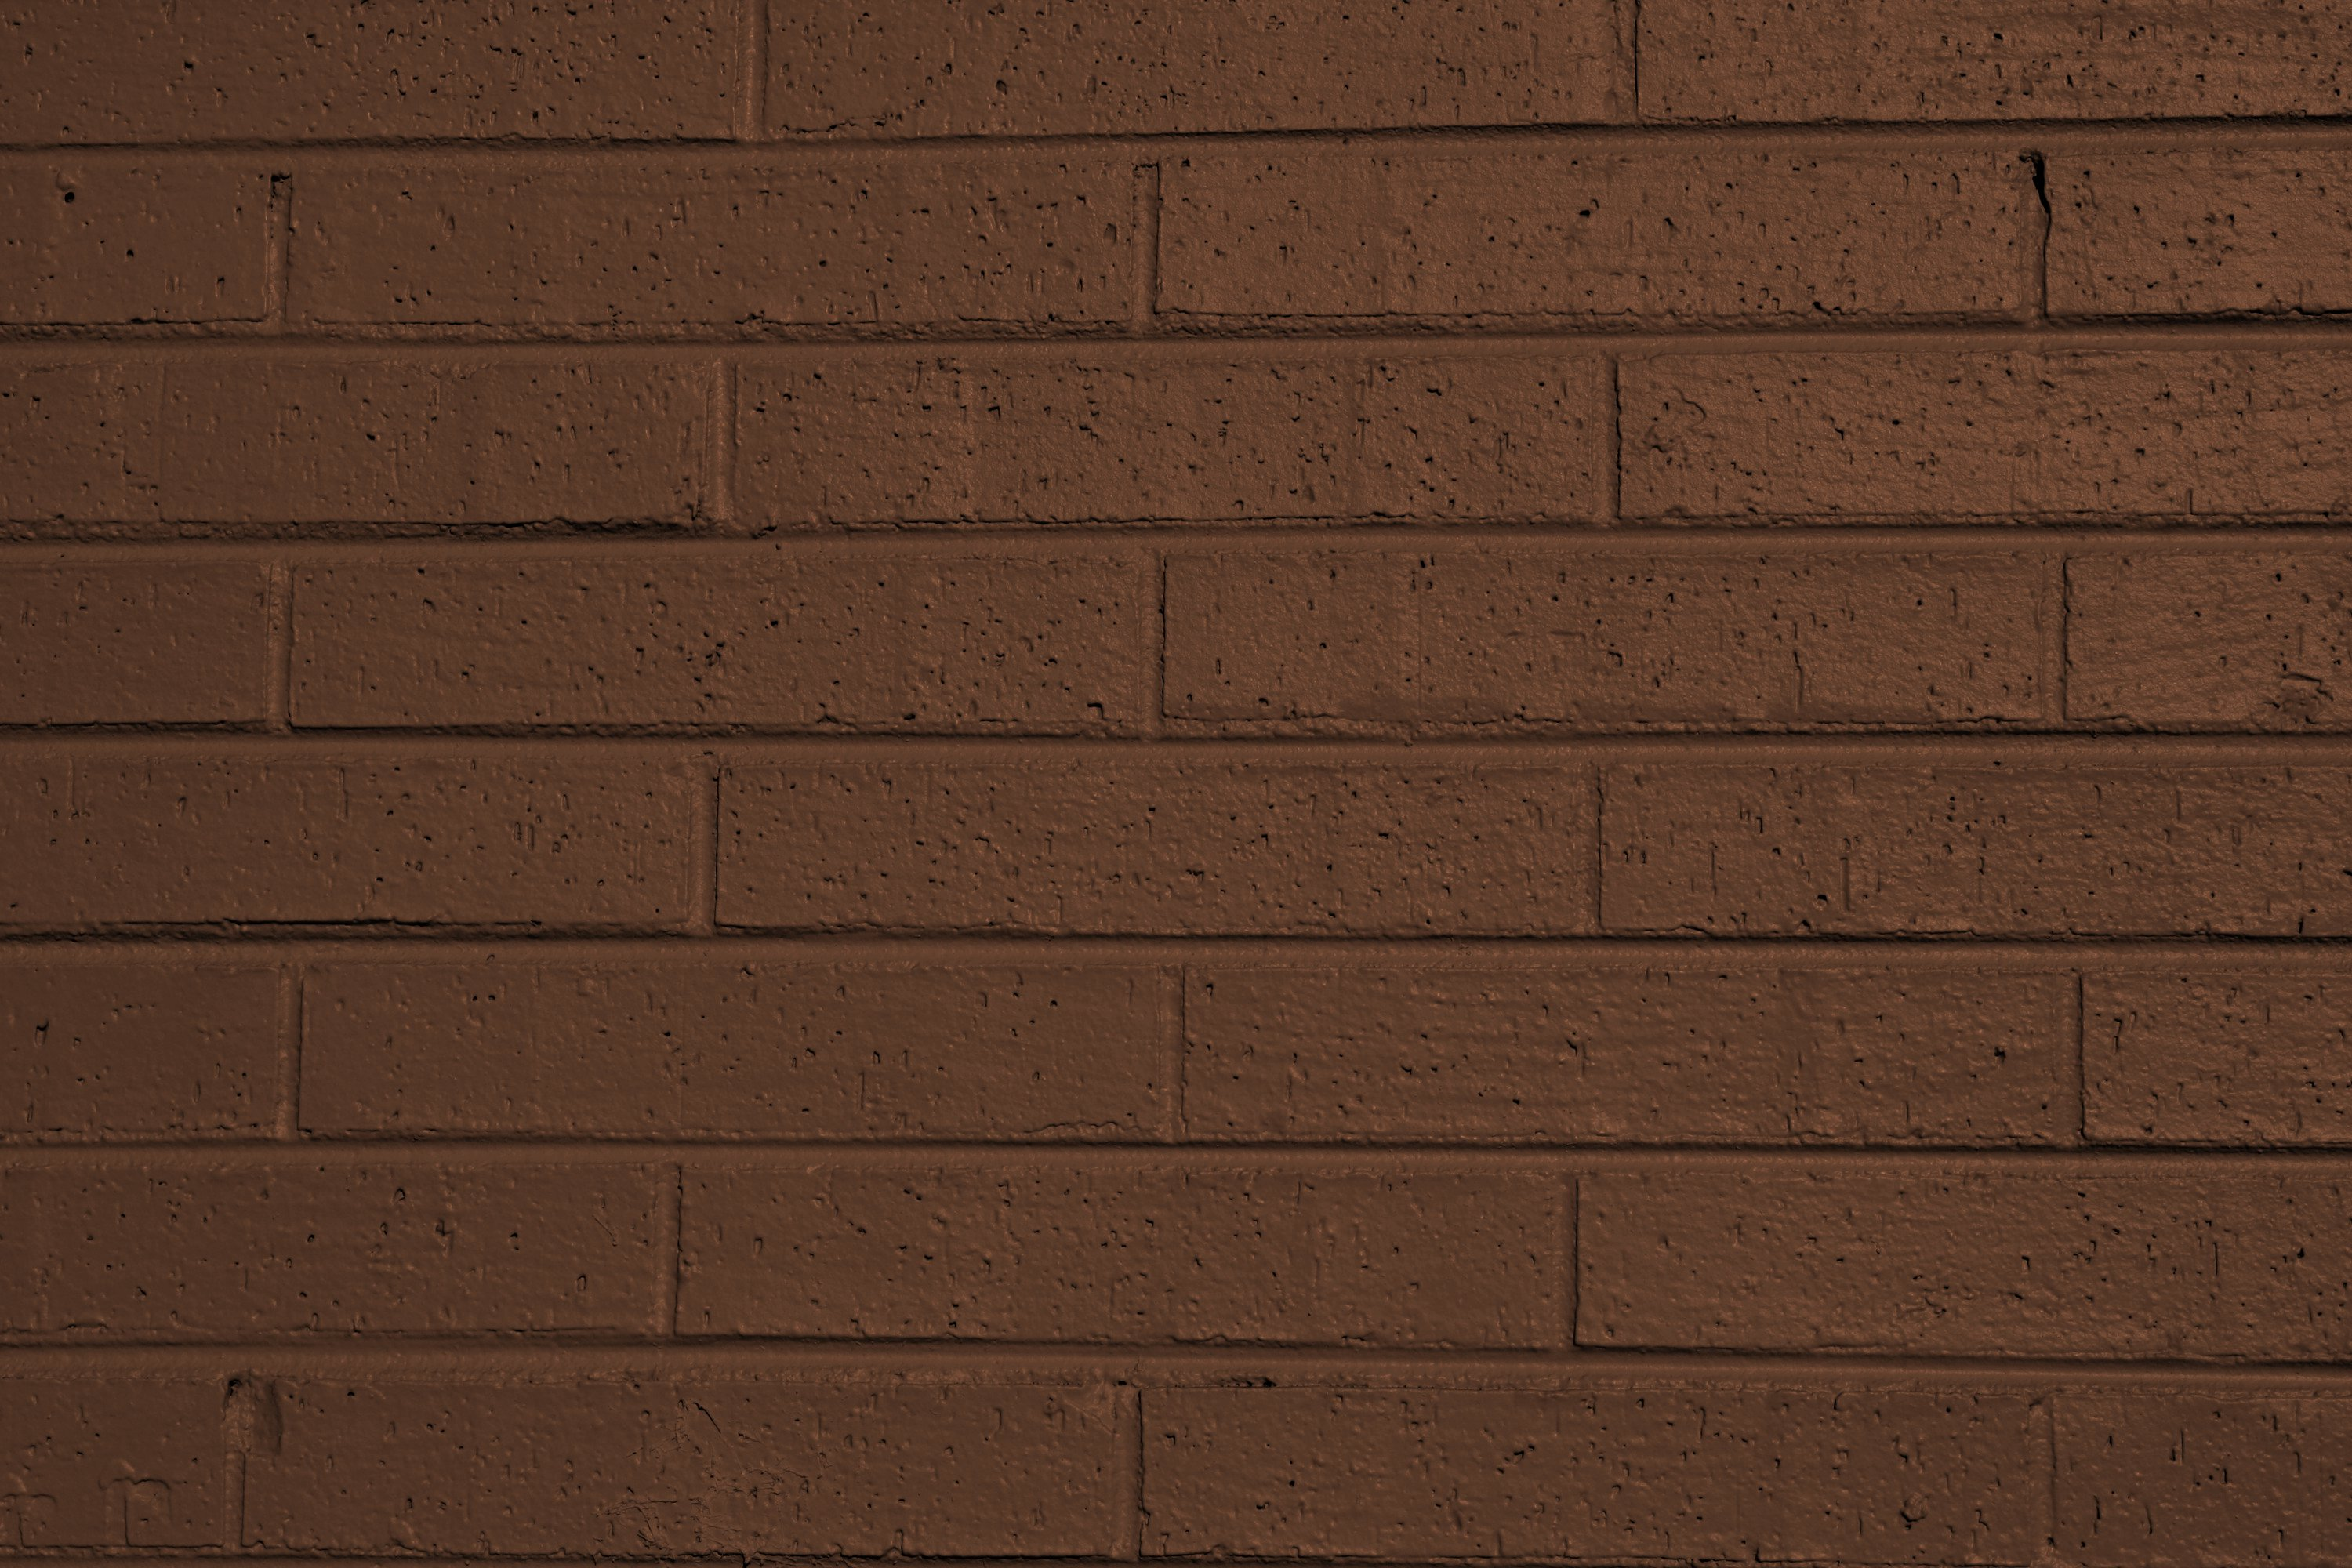 Brown painted brick wall texture picture free photograph for Brown colors for walls